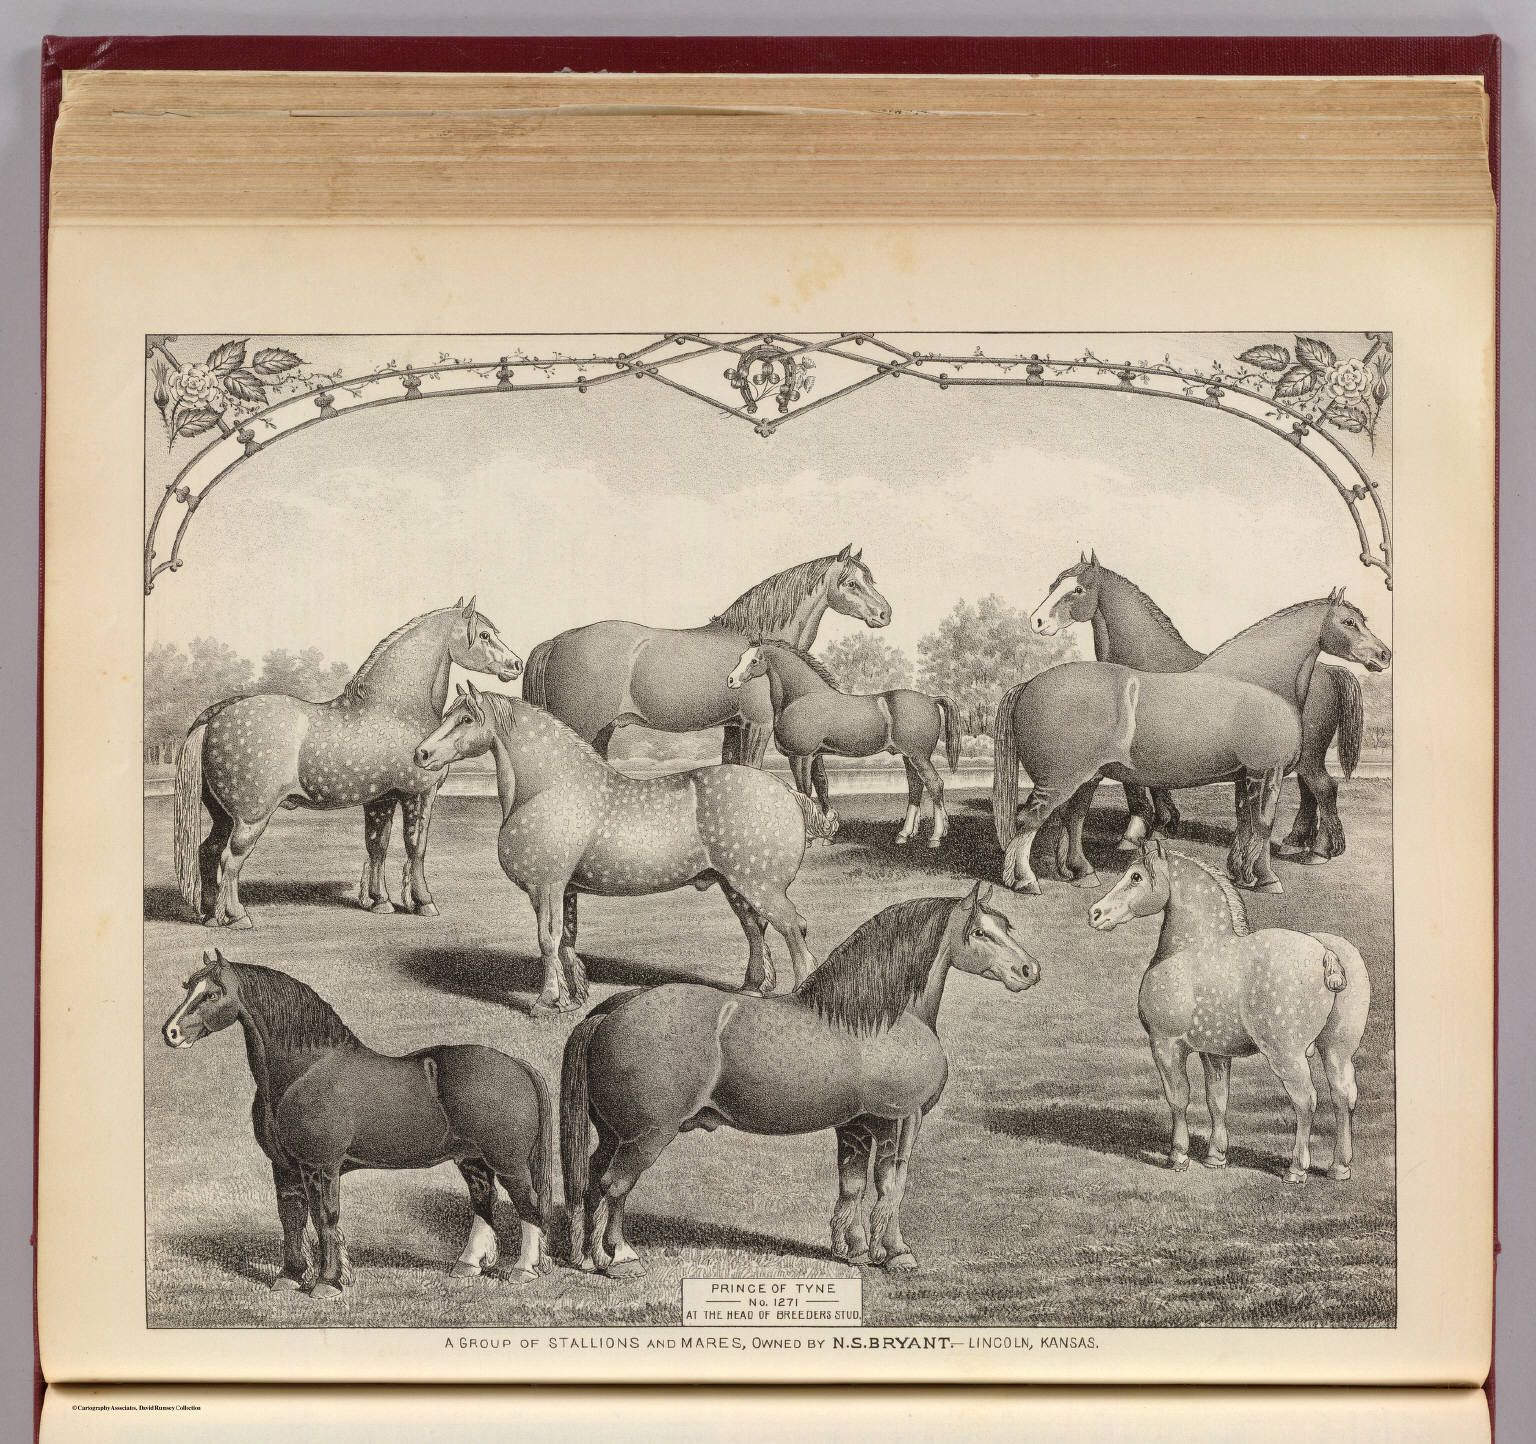 A group of stallions and mares, Lincoln, Kansas.